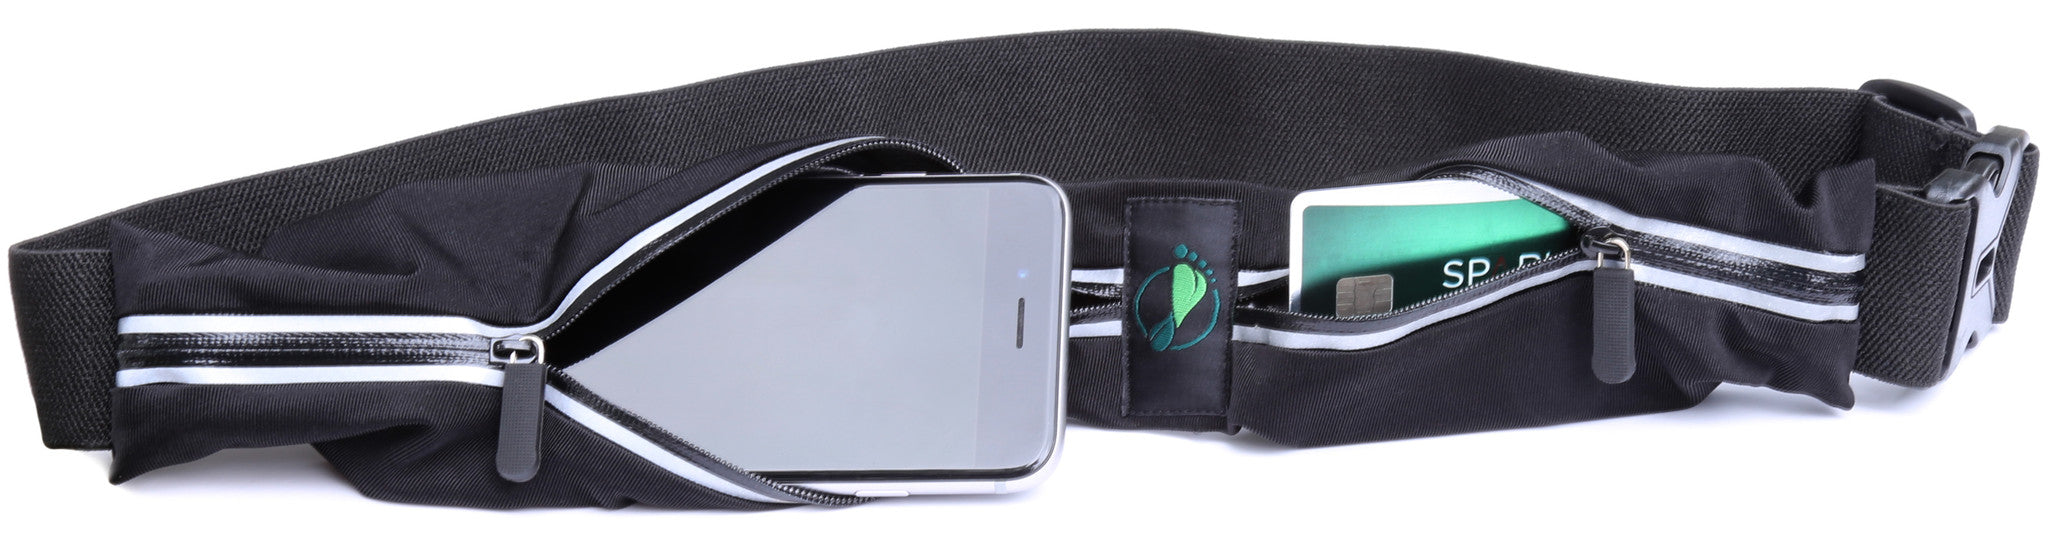 Two Pocket Running Belt Plus for iPhone 7 Plus, Samsung Galaxy Note 7 & All Other Size Phones.